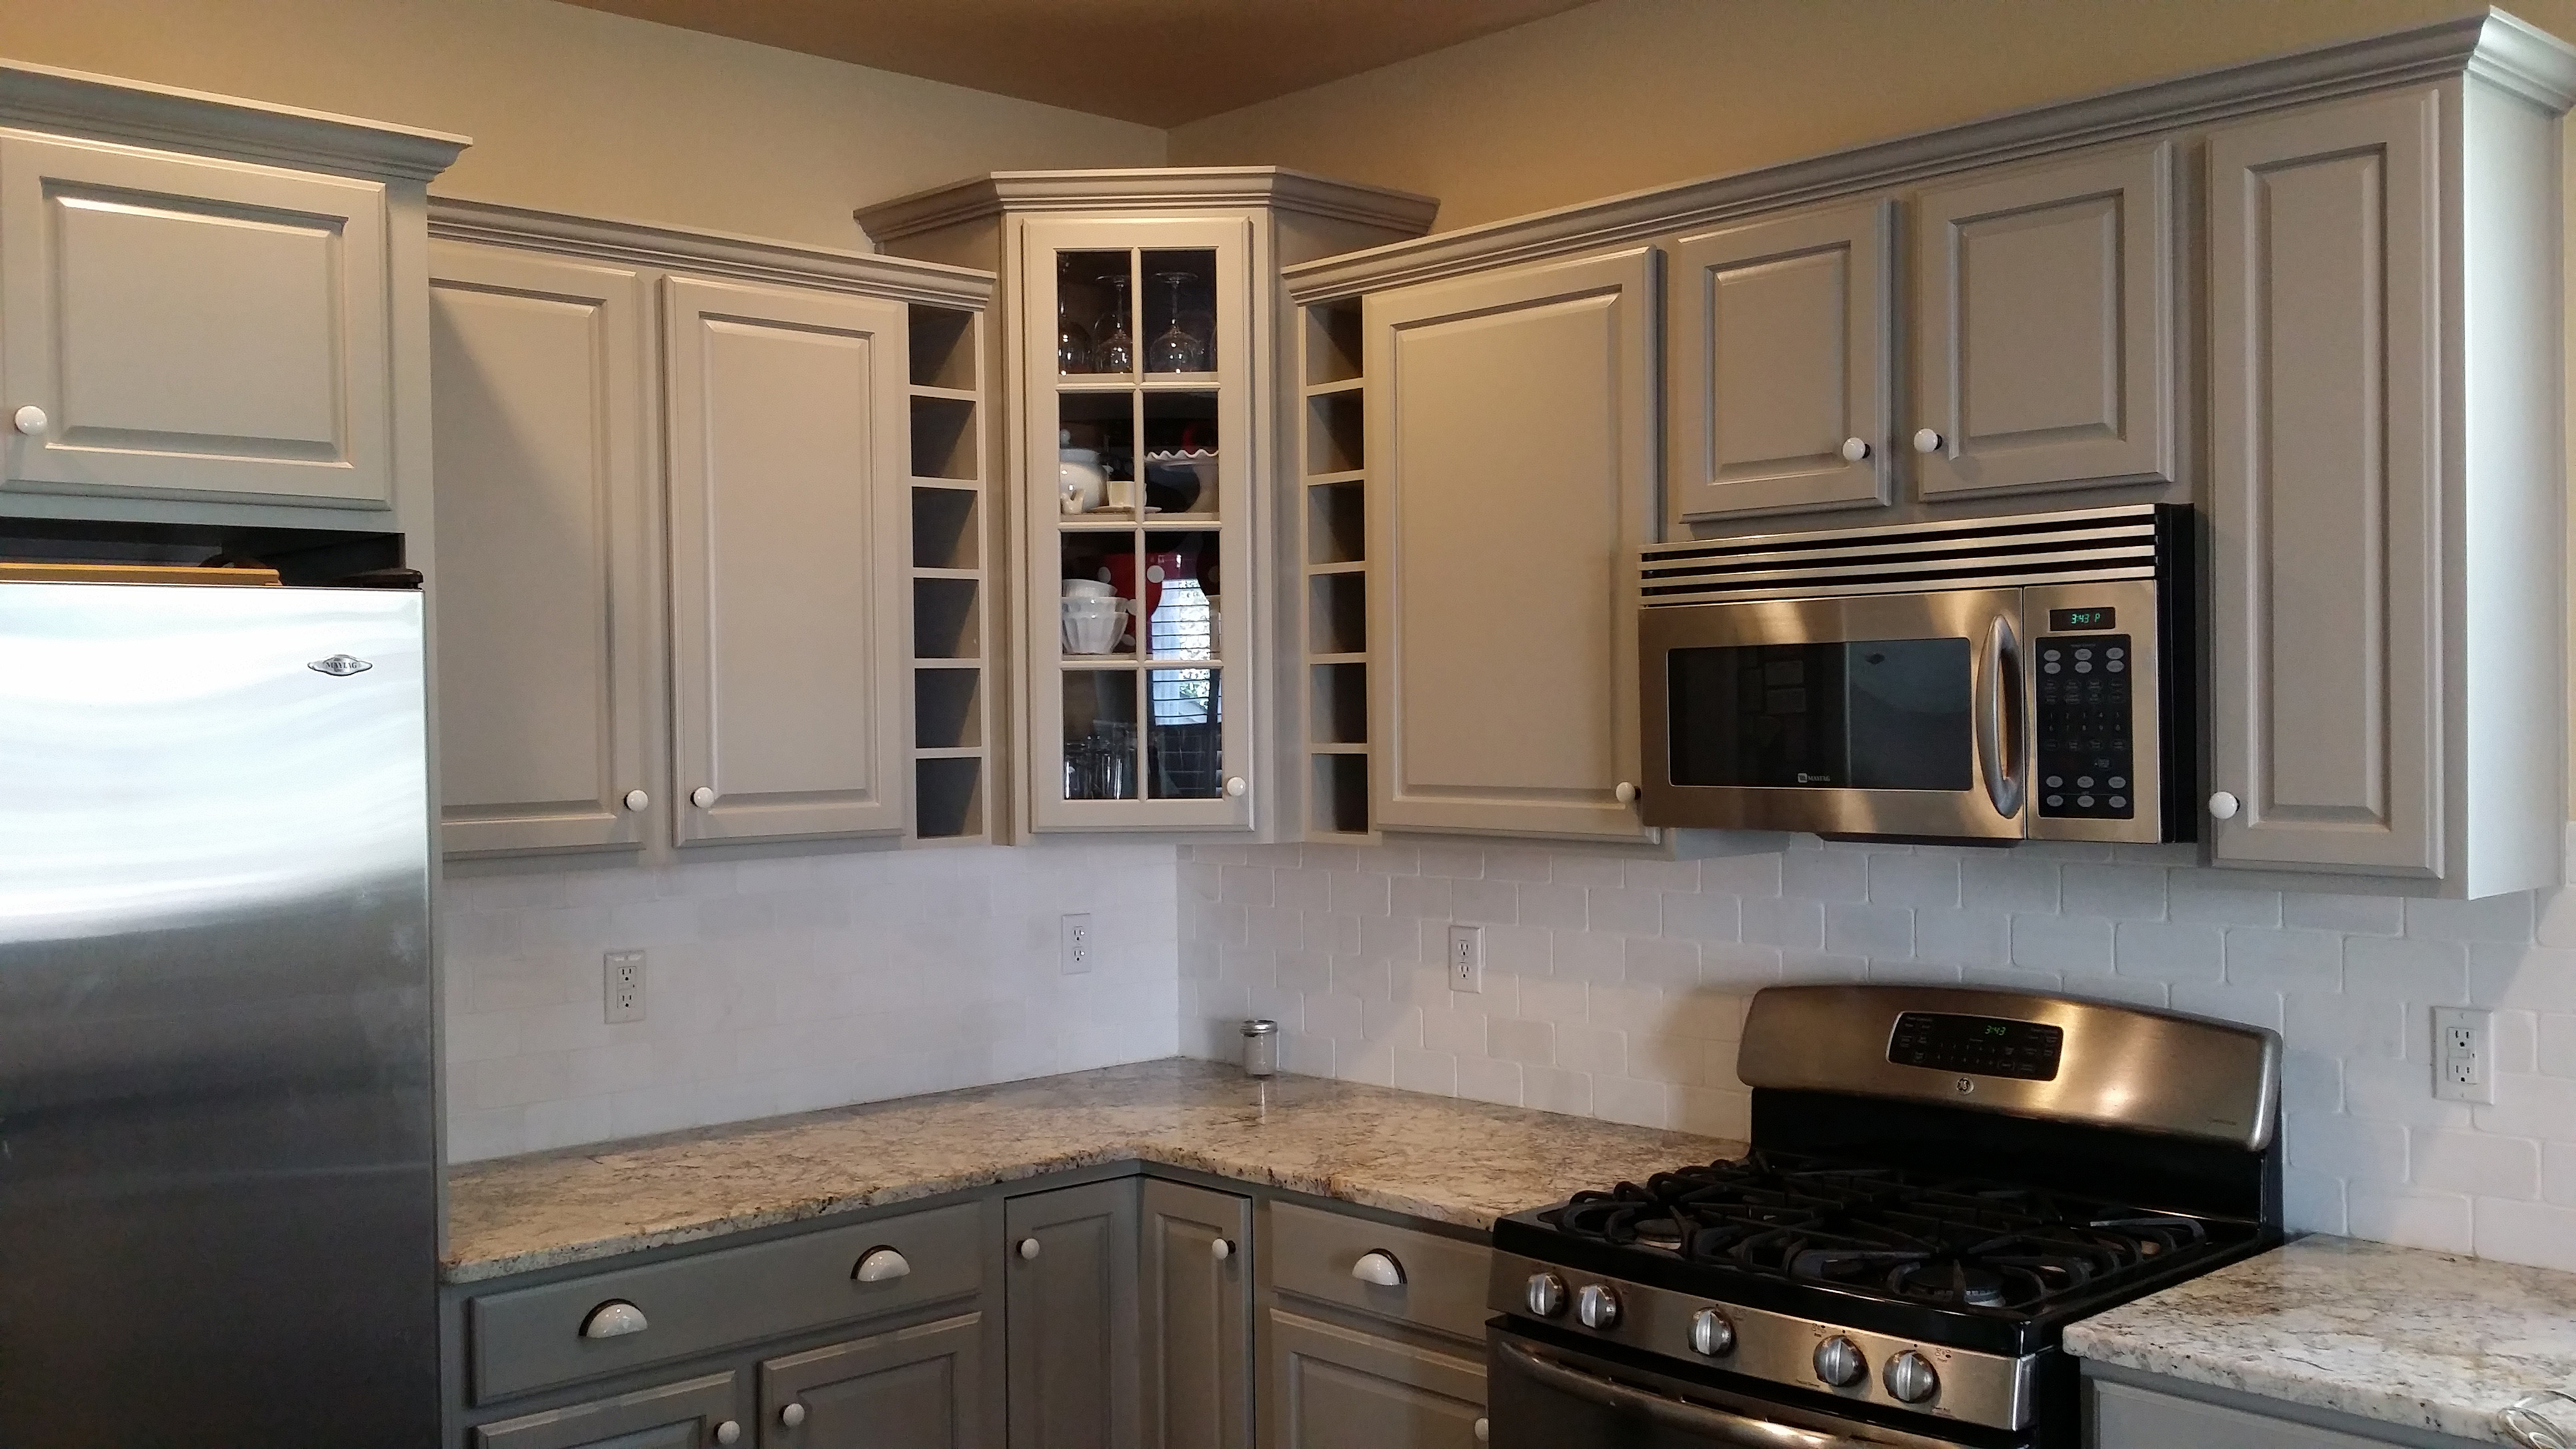 Gallery 5280 Cabinet Coatings Cabinet Coating Refinishing